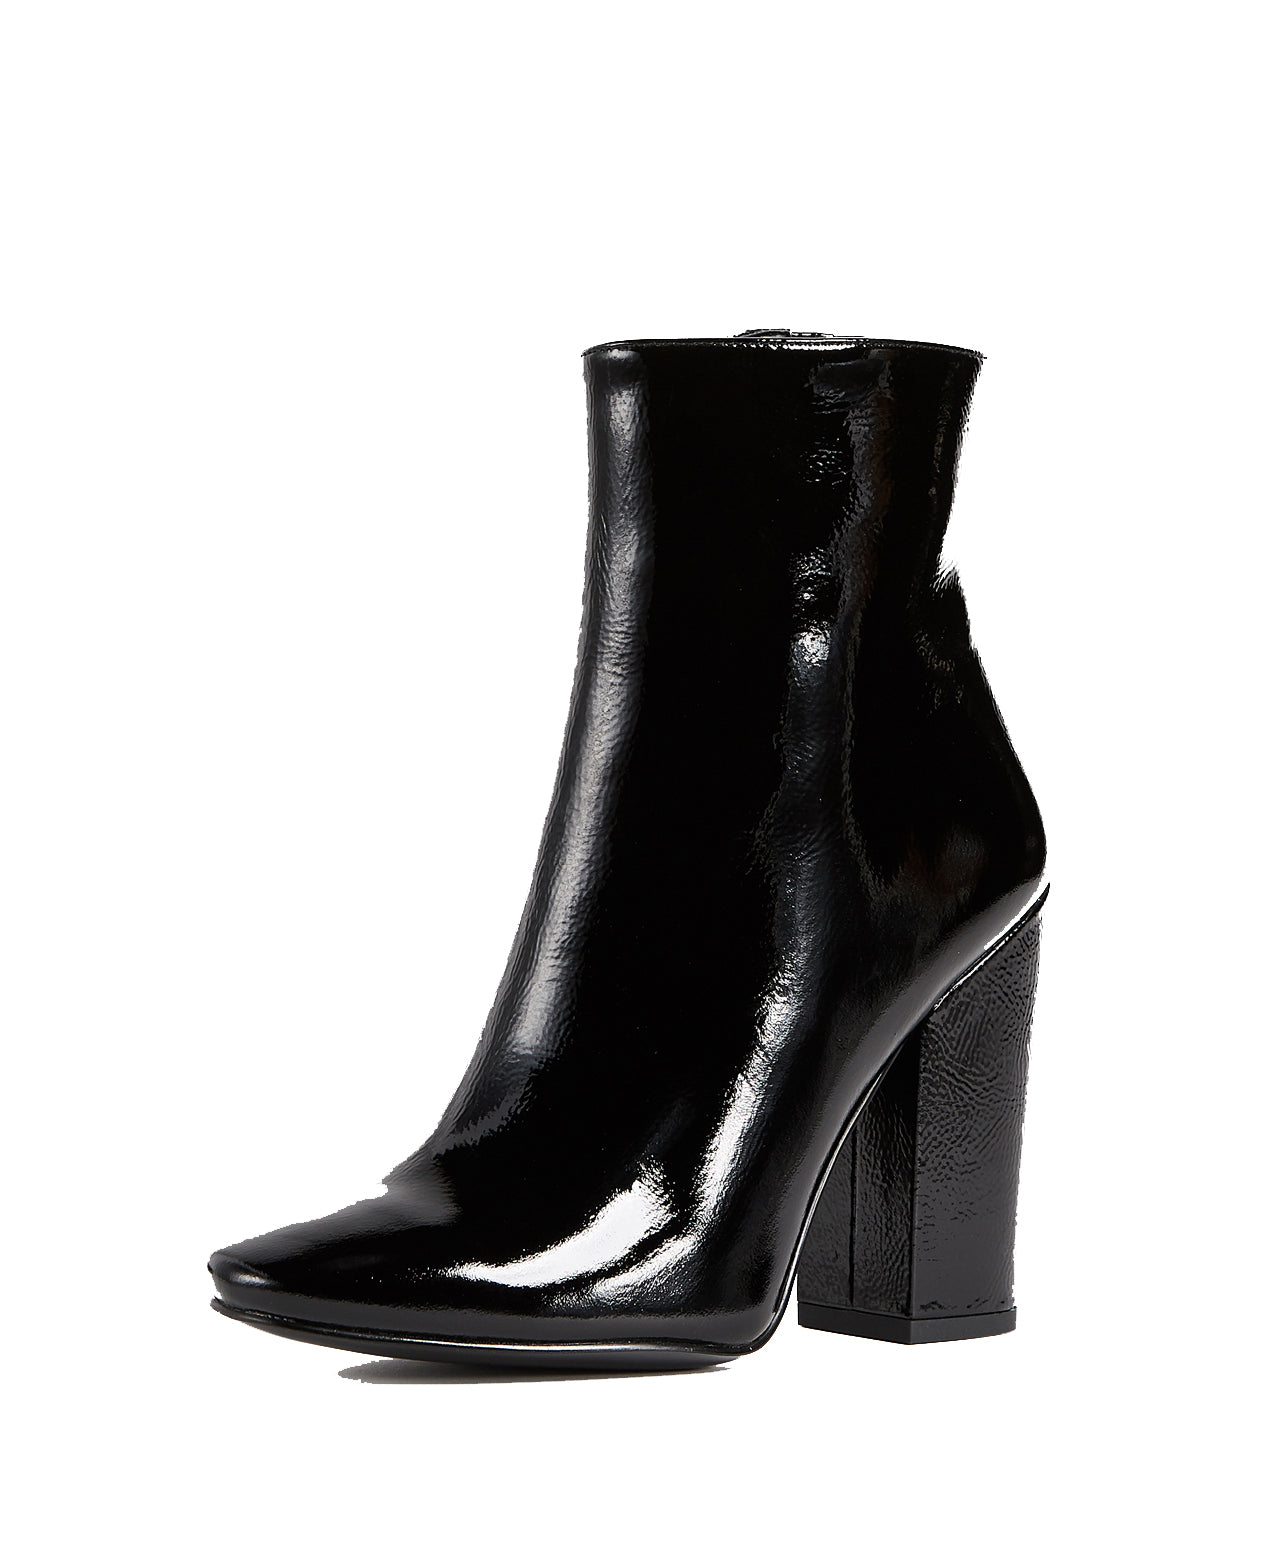 Kendall + Kylie Haedyn2 Patent Black Bootie